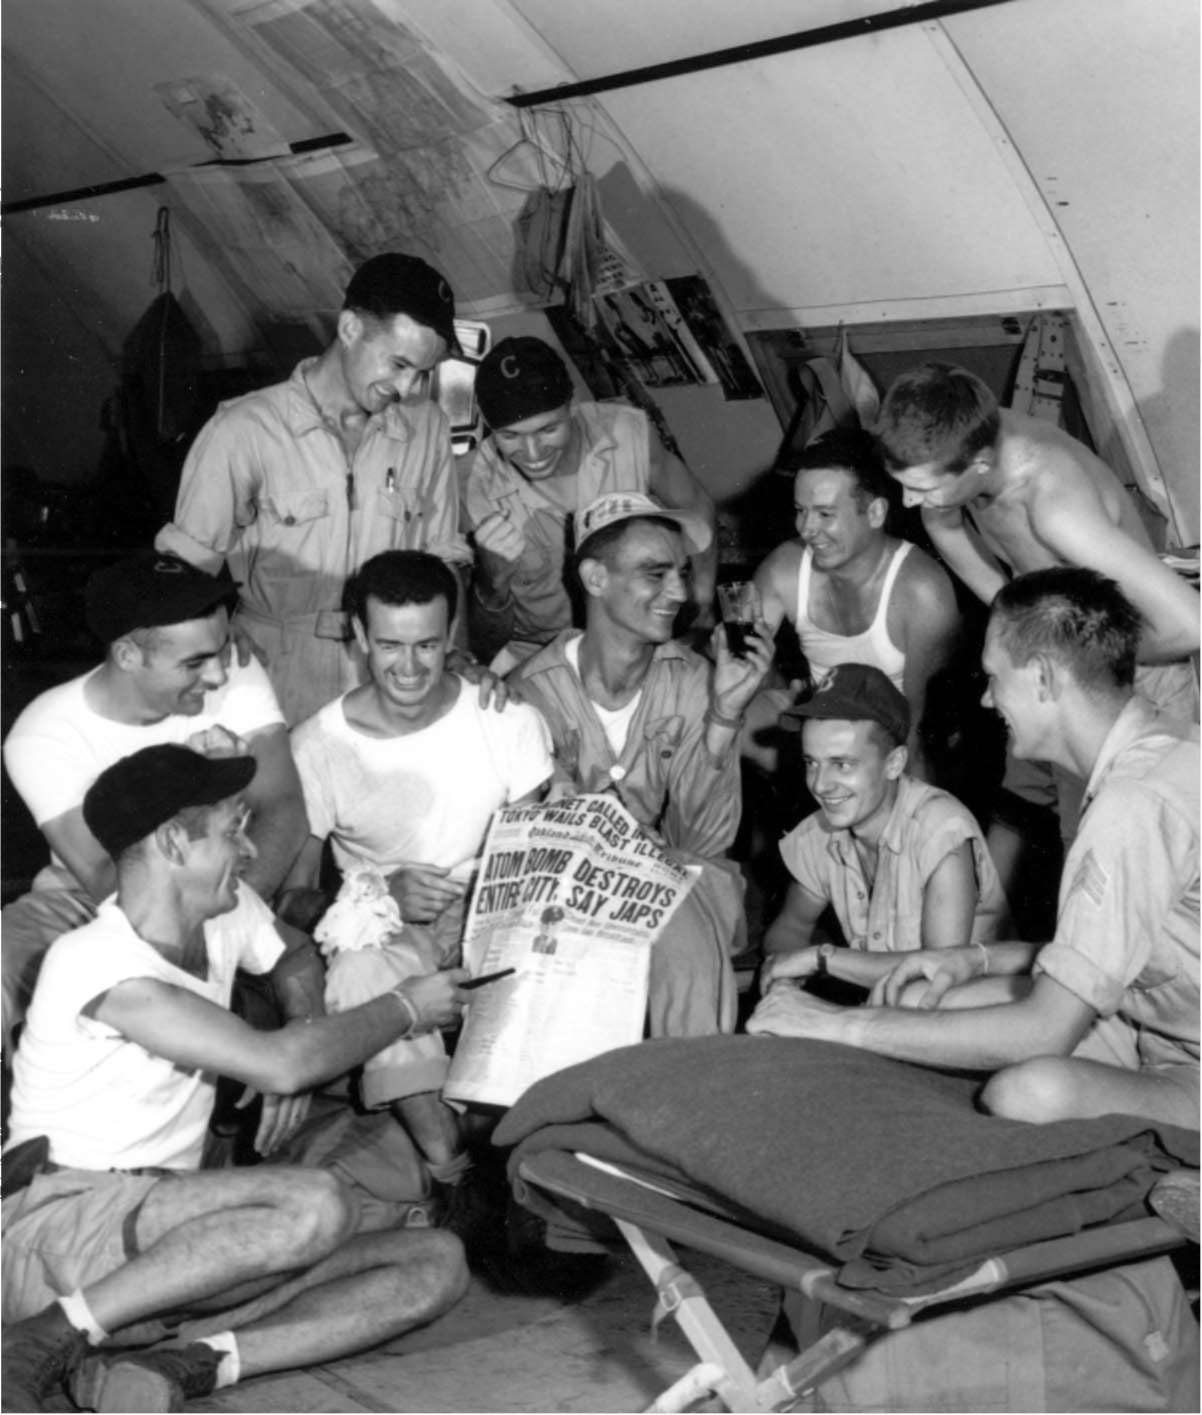 US PERSONNEL STATIONED ON GUAM Discussing The News Of First Atomic Bomb Dropped On Japan